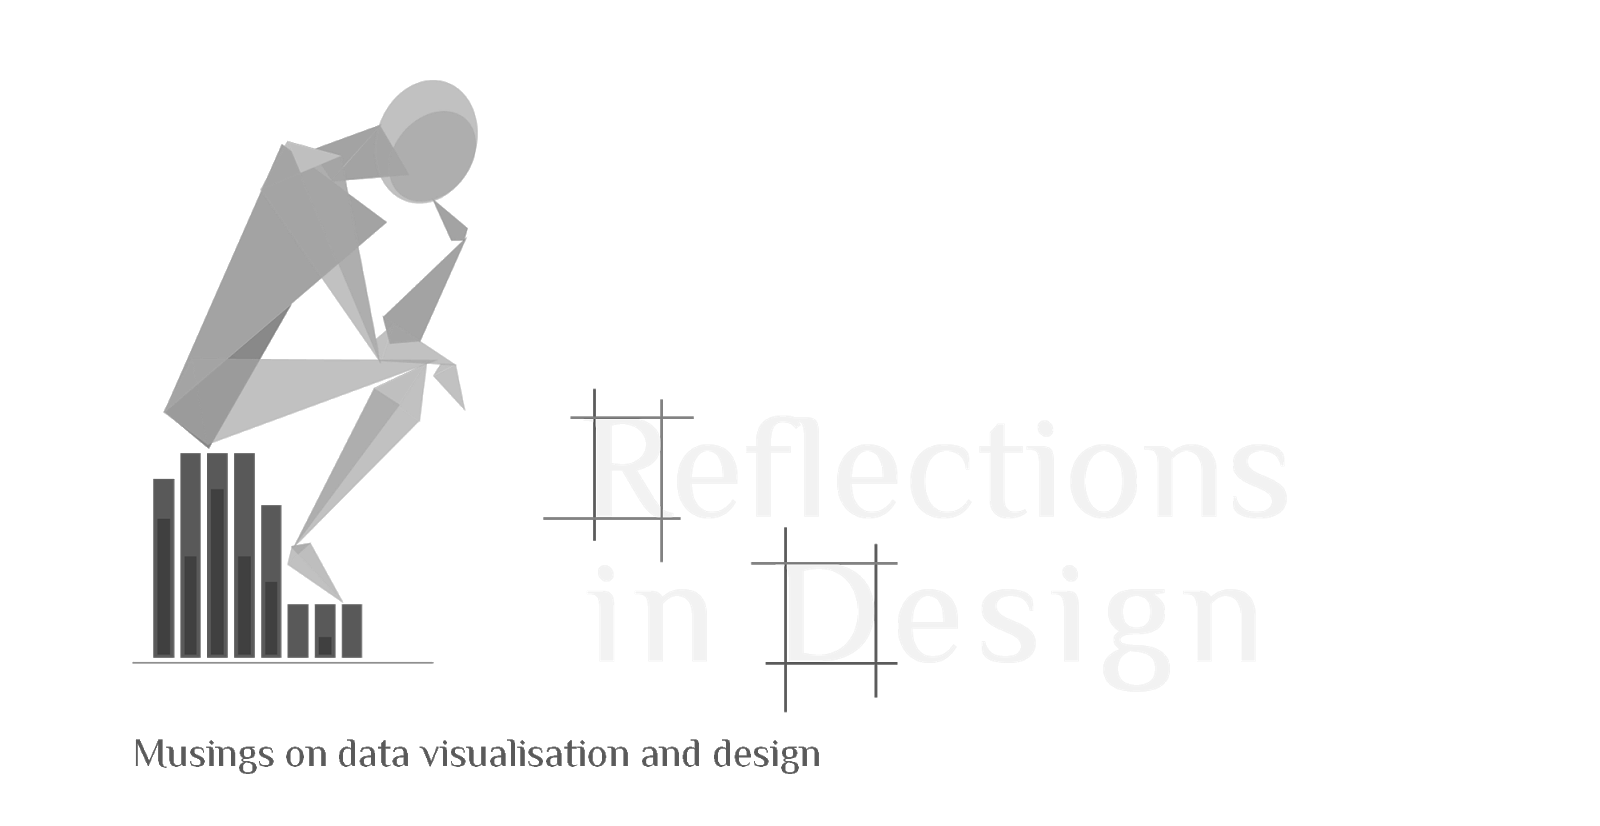 Reflections in Design